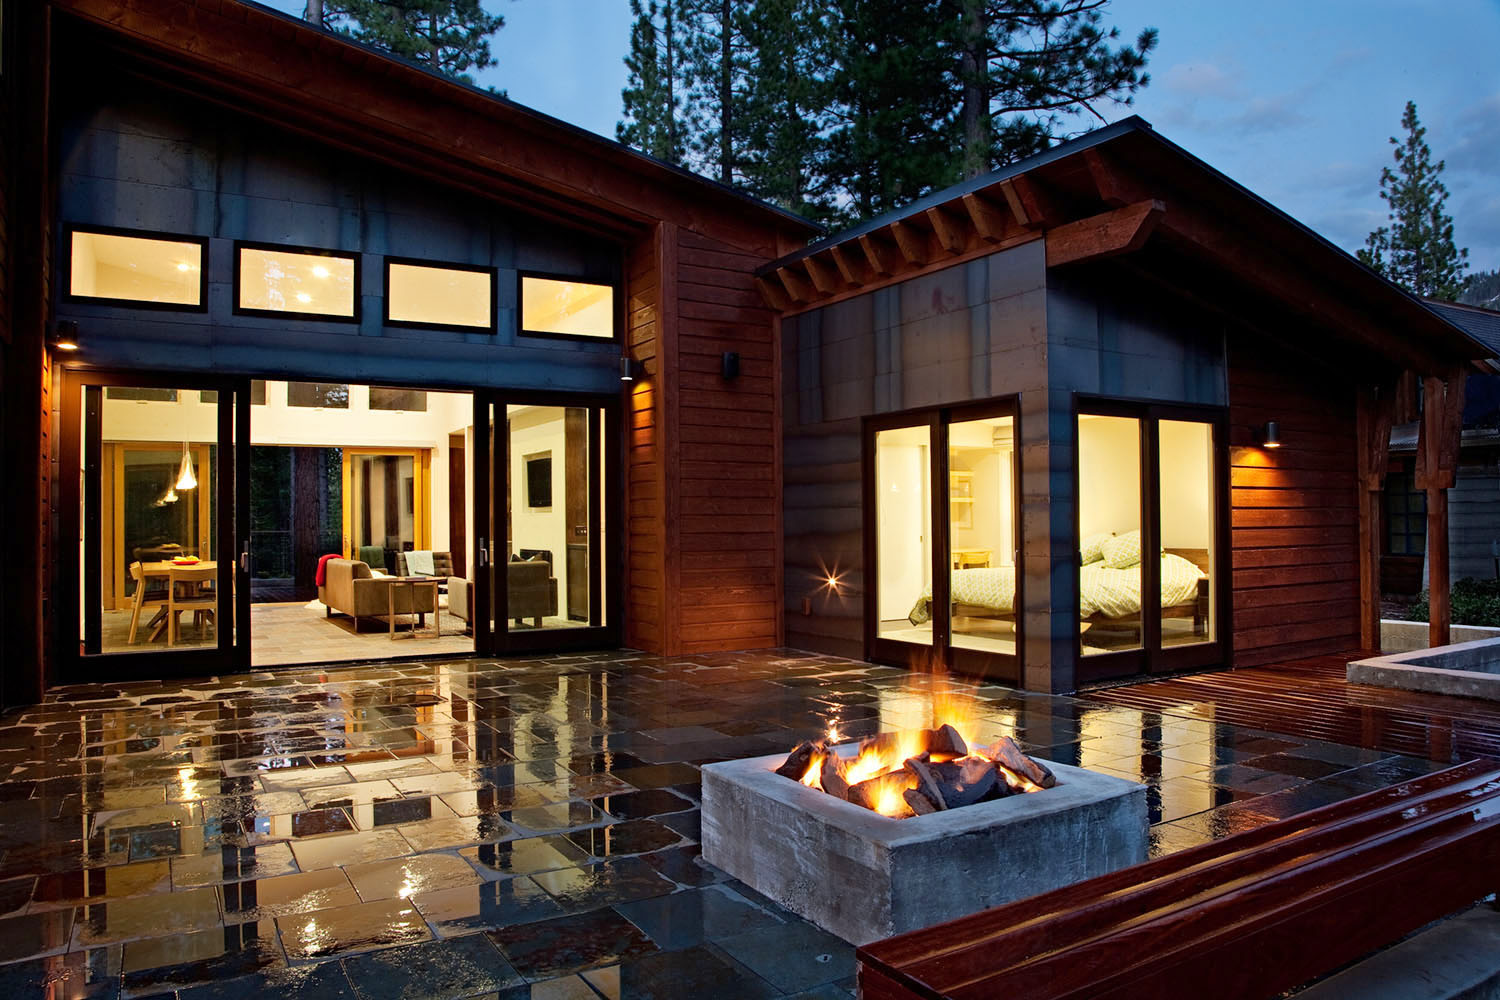 photo of Modern Home on a Mountain With Front Yard Tiling And Outdoor Fireplace